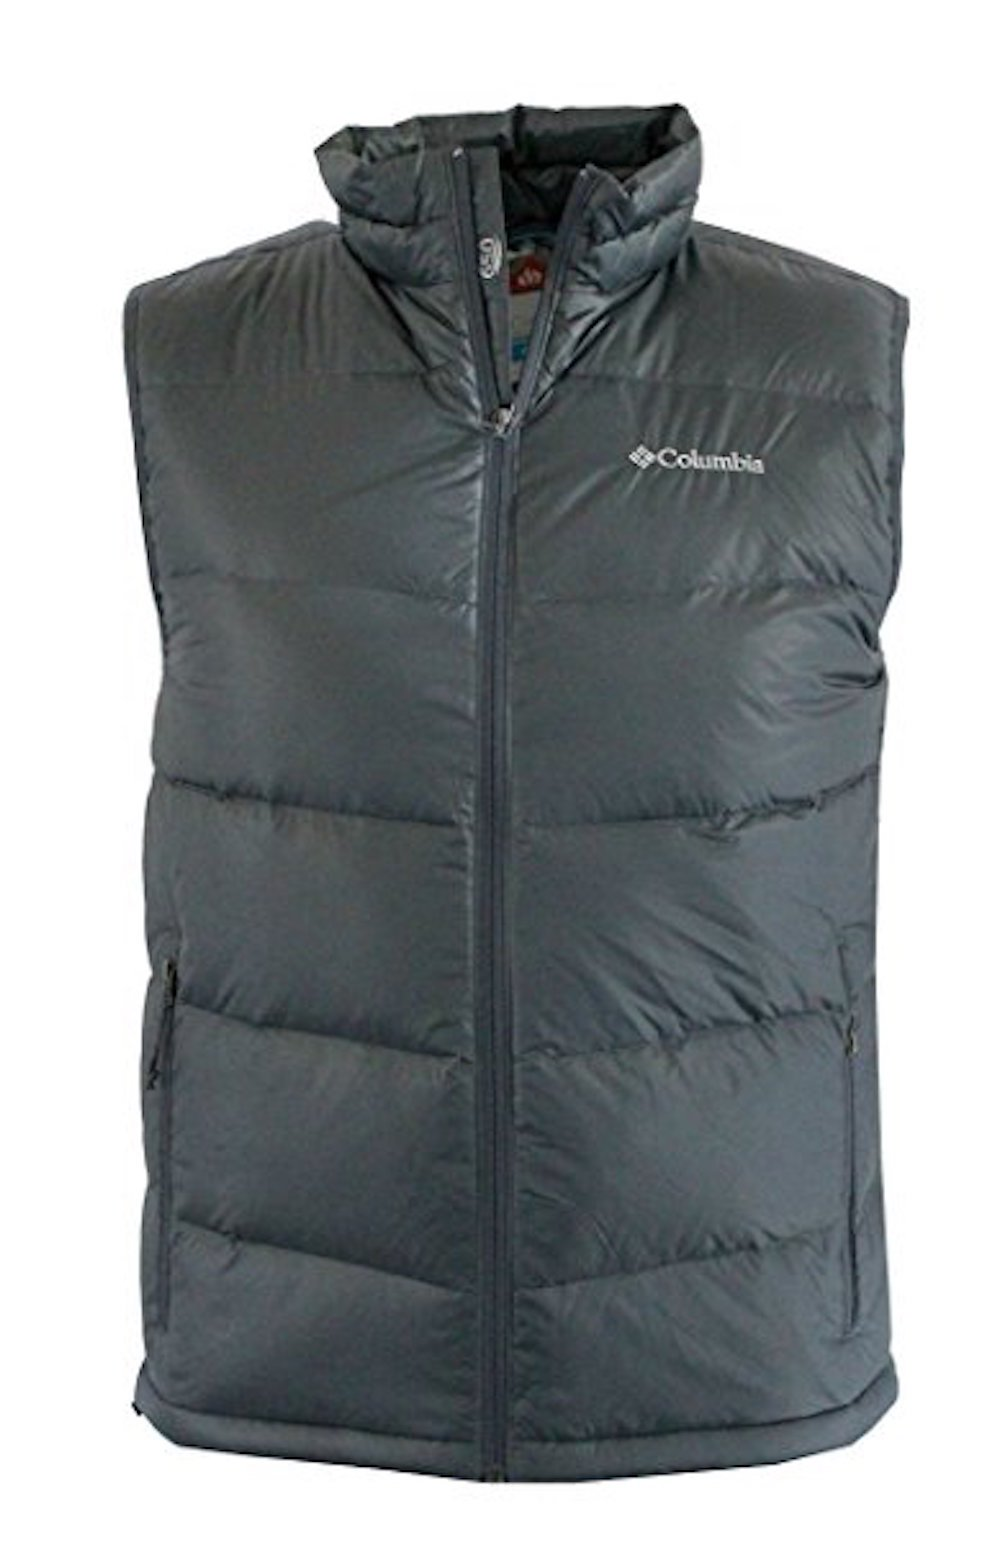 Columbia Men's Superpipe Slope Winter Omni Heat 650 Down Puffer Vest (Graphite, XL) by Columbia (Image #1)